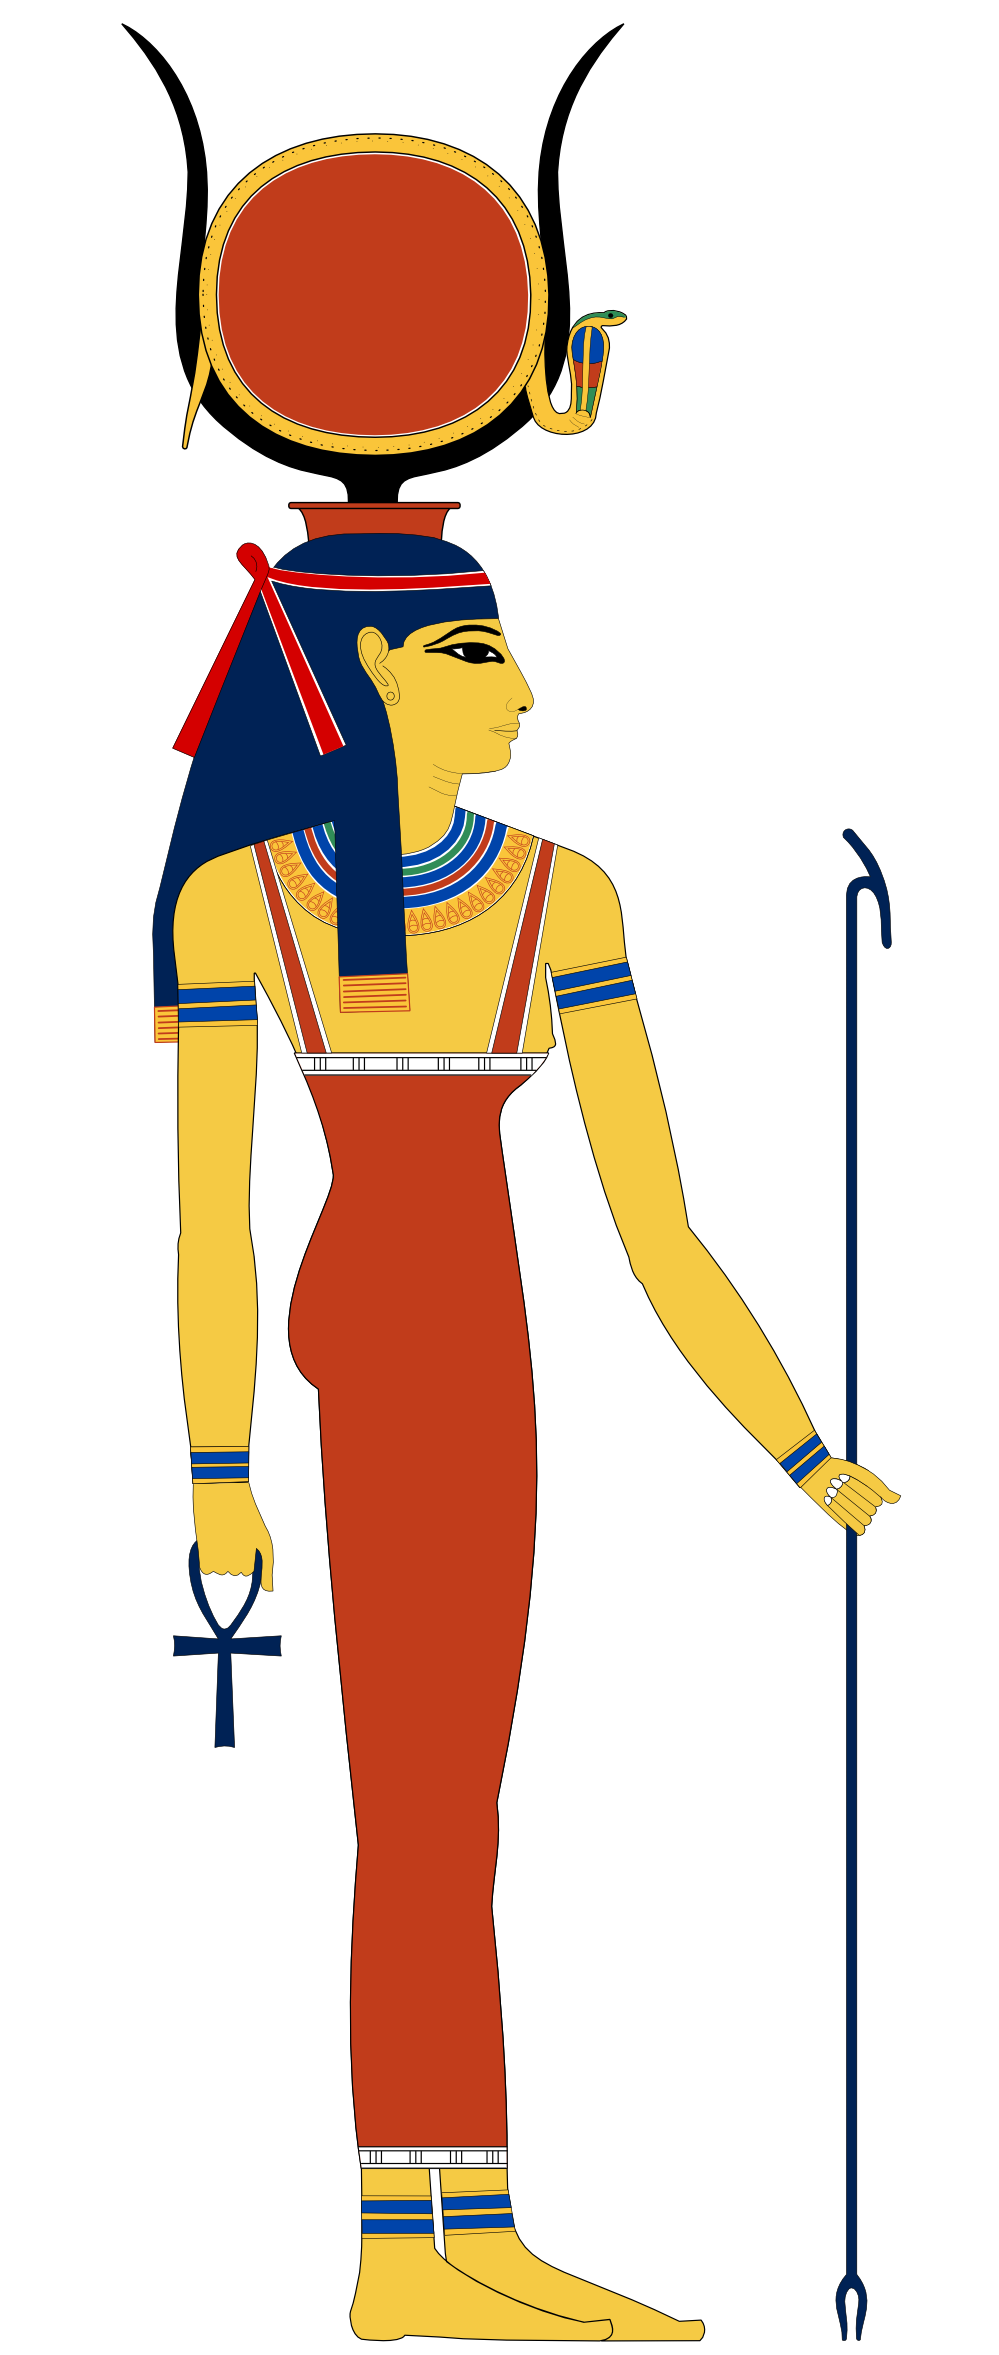 Bust wearing a crown images clipart download hathor | egypt hathor SVG 158(K) | Counted with the Stars | Pinterest download